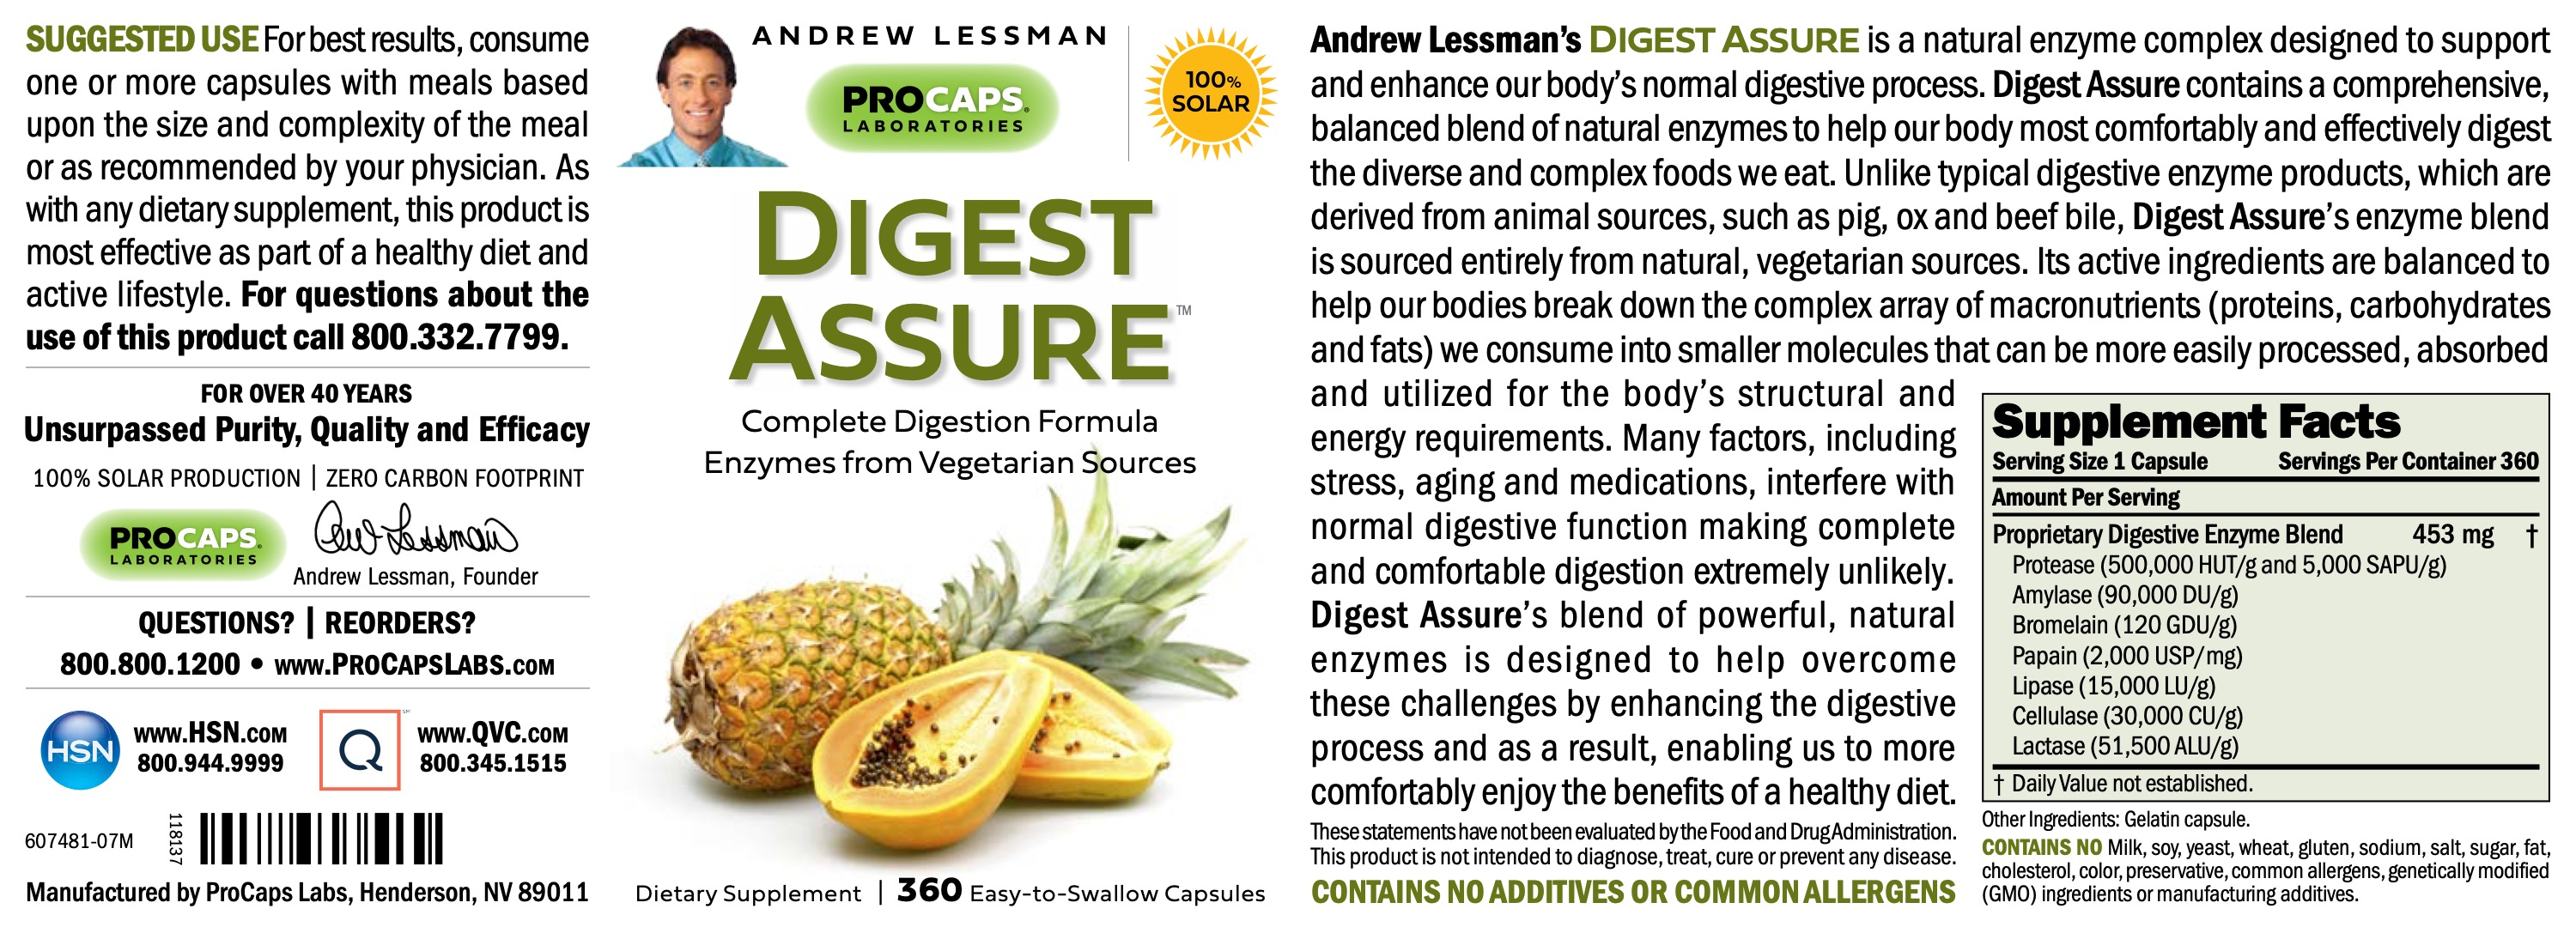 Digest-Assure-Capsules-Digestive-Support